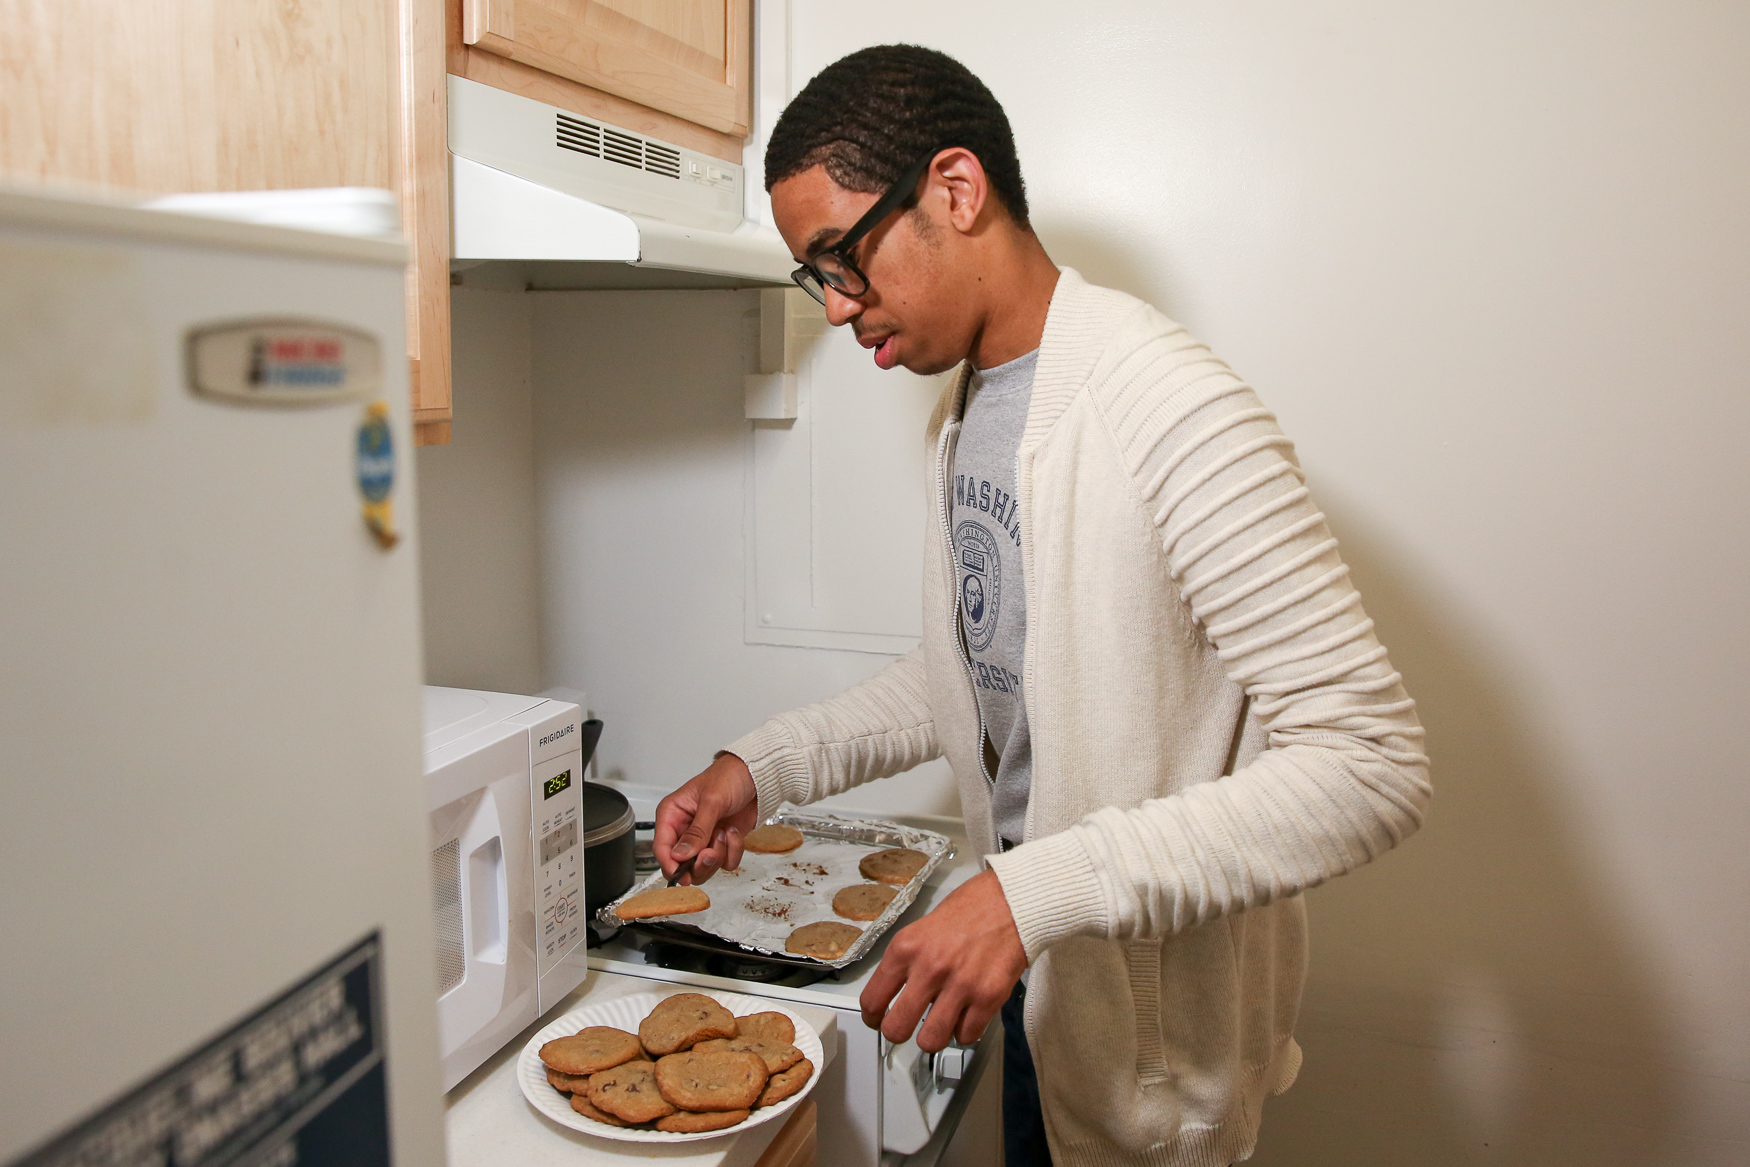 Serving up cookies in his dorm's kitchen.{&amp;nbsp;} (Amanda Andrade-Rhoades/DC Refined)<p></p><p></p>